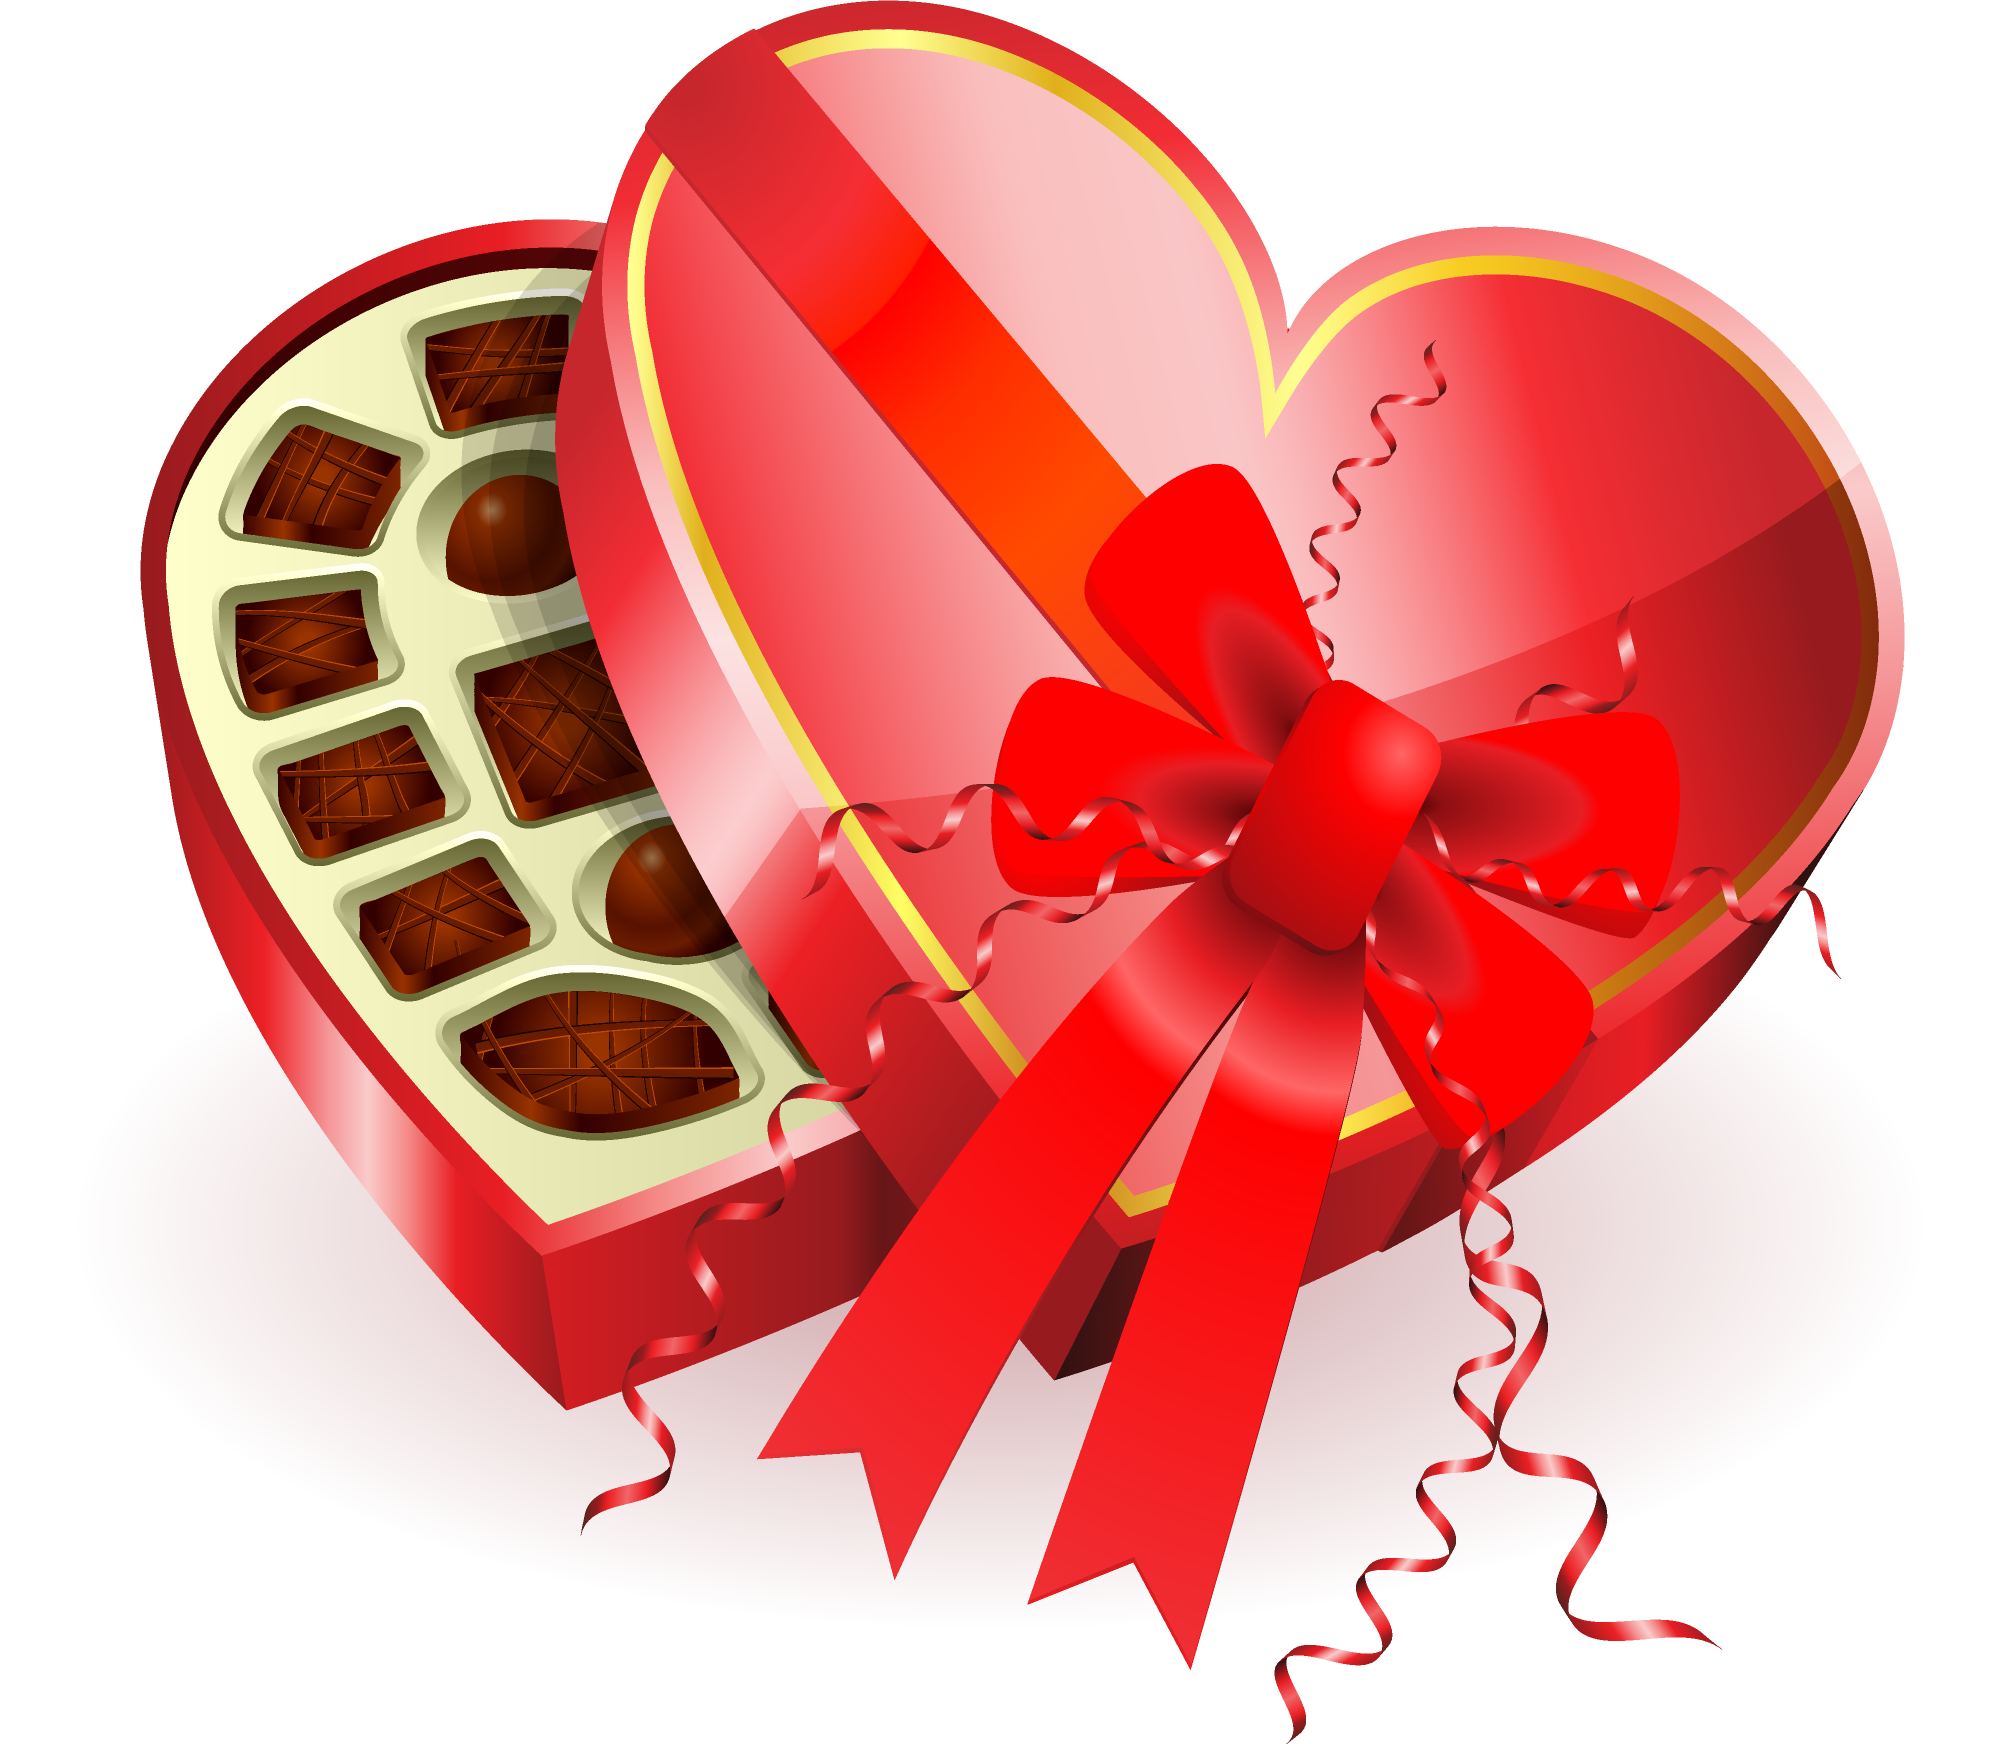 Heart-shaped clipart chocolate box #8